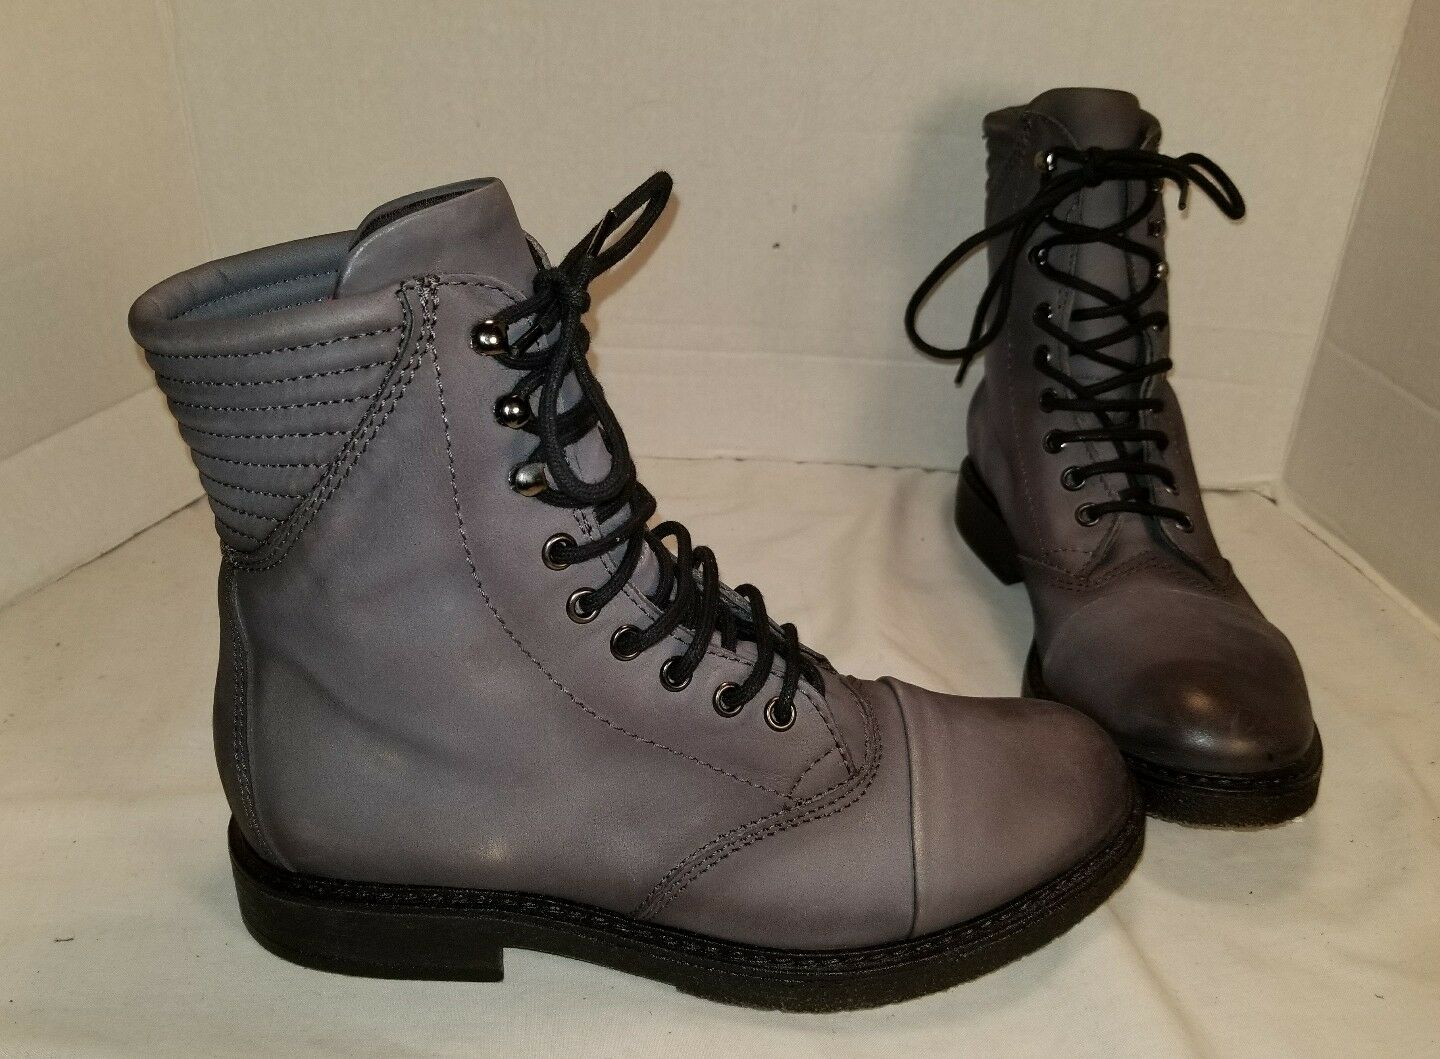 NEW FREE PEOPLE SPARROW LACE UP BLACK LEATHER BOOTS US 8 EU 38